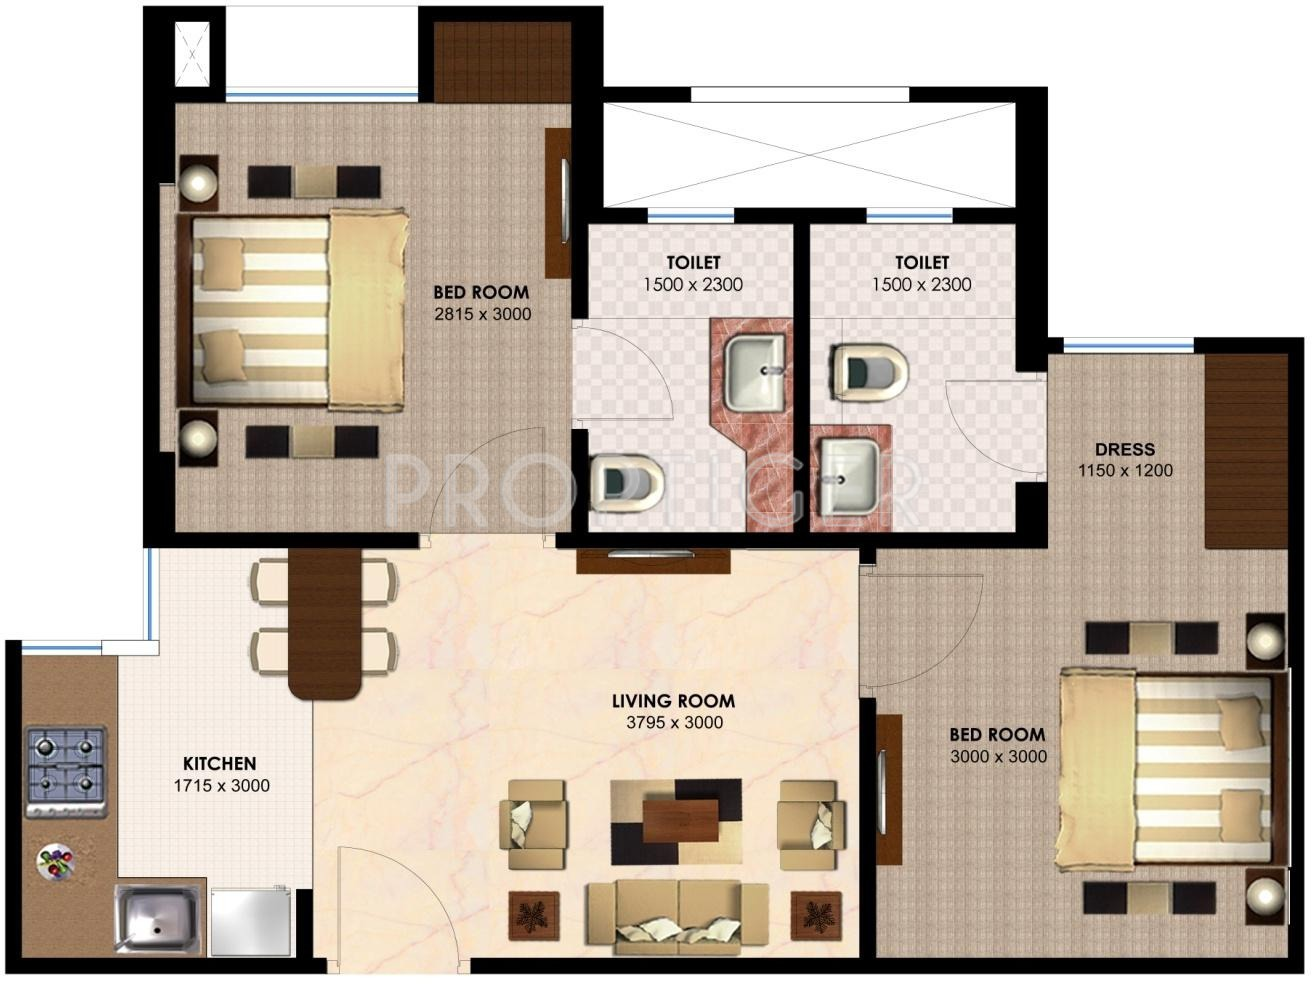 750 sq ft 2 bhk 28 images 750 sq ft 2 bedroom for Floor plans 750 square feet